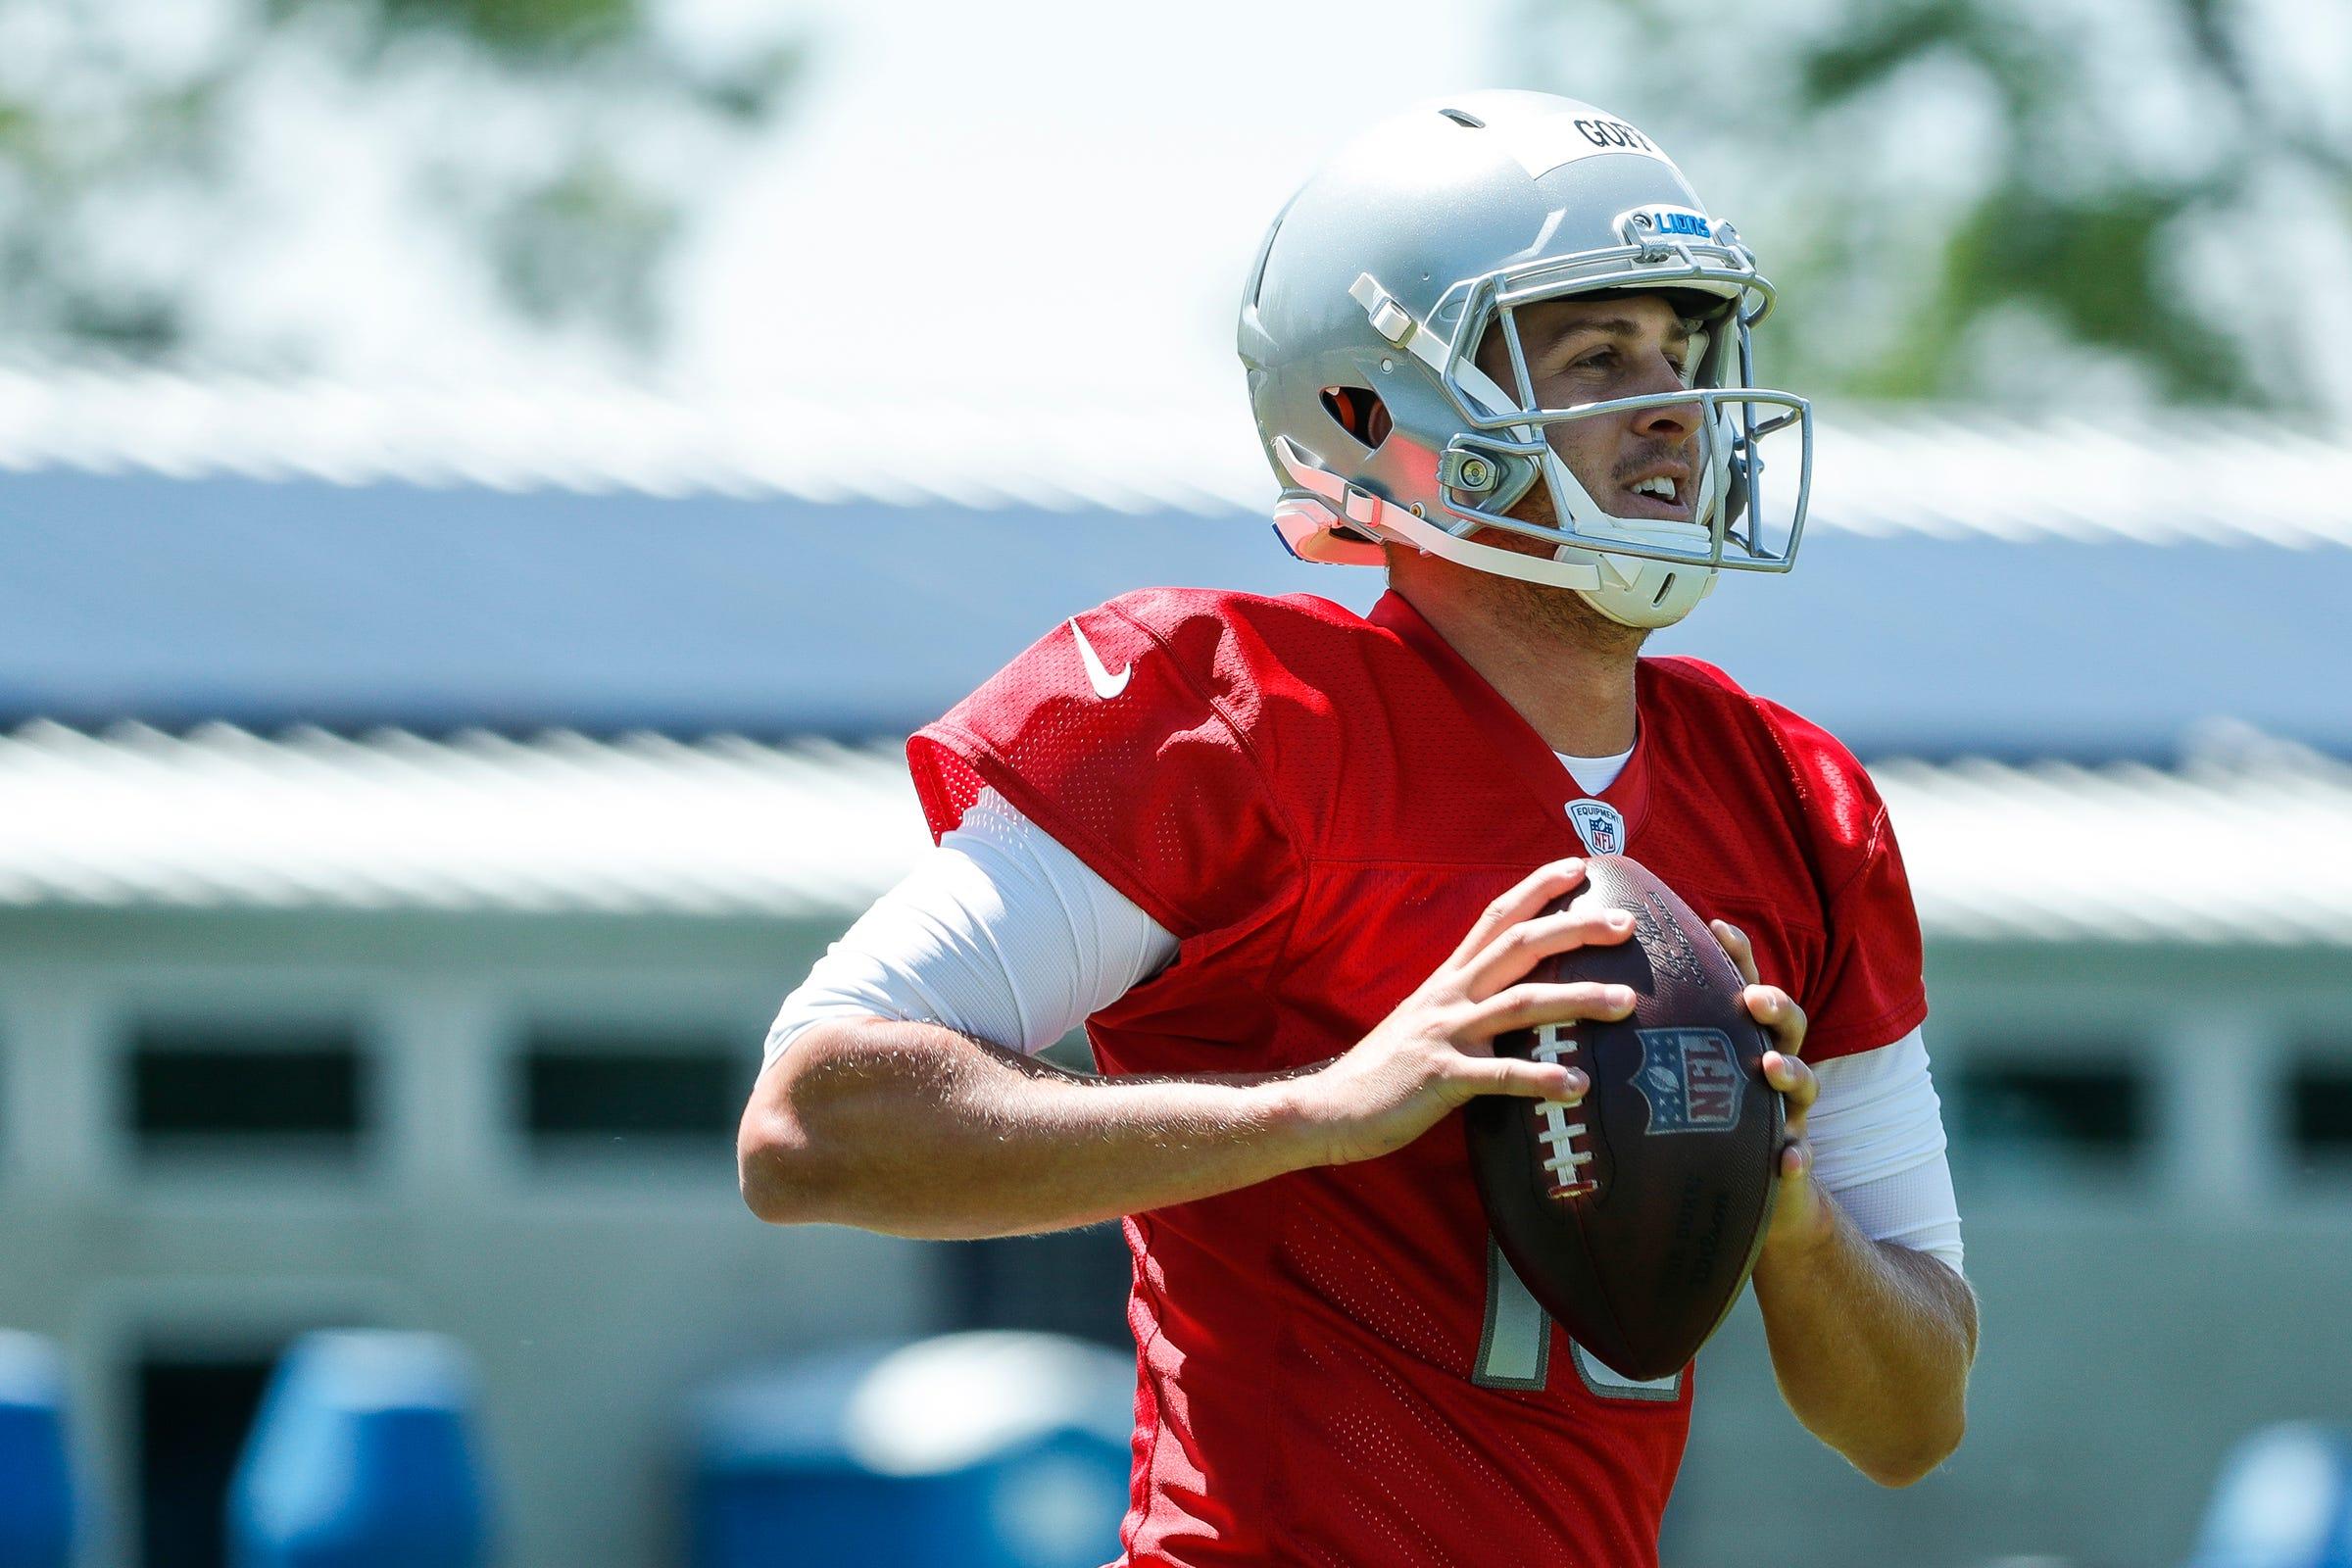 Jared Goff was impressive in first practice as Detroit Lions quarterback, and this is why